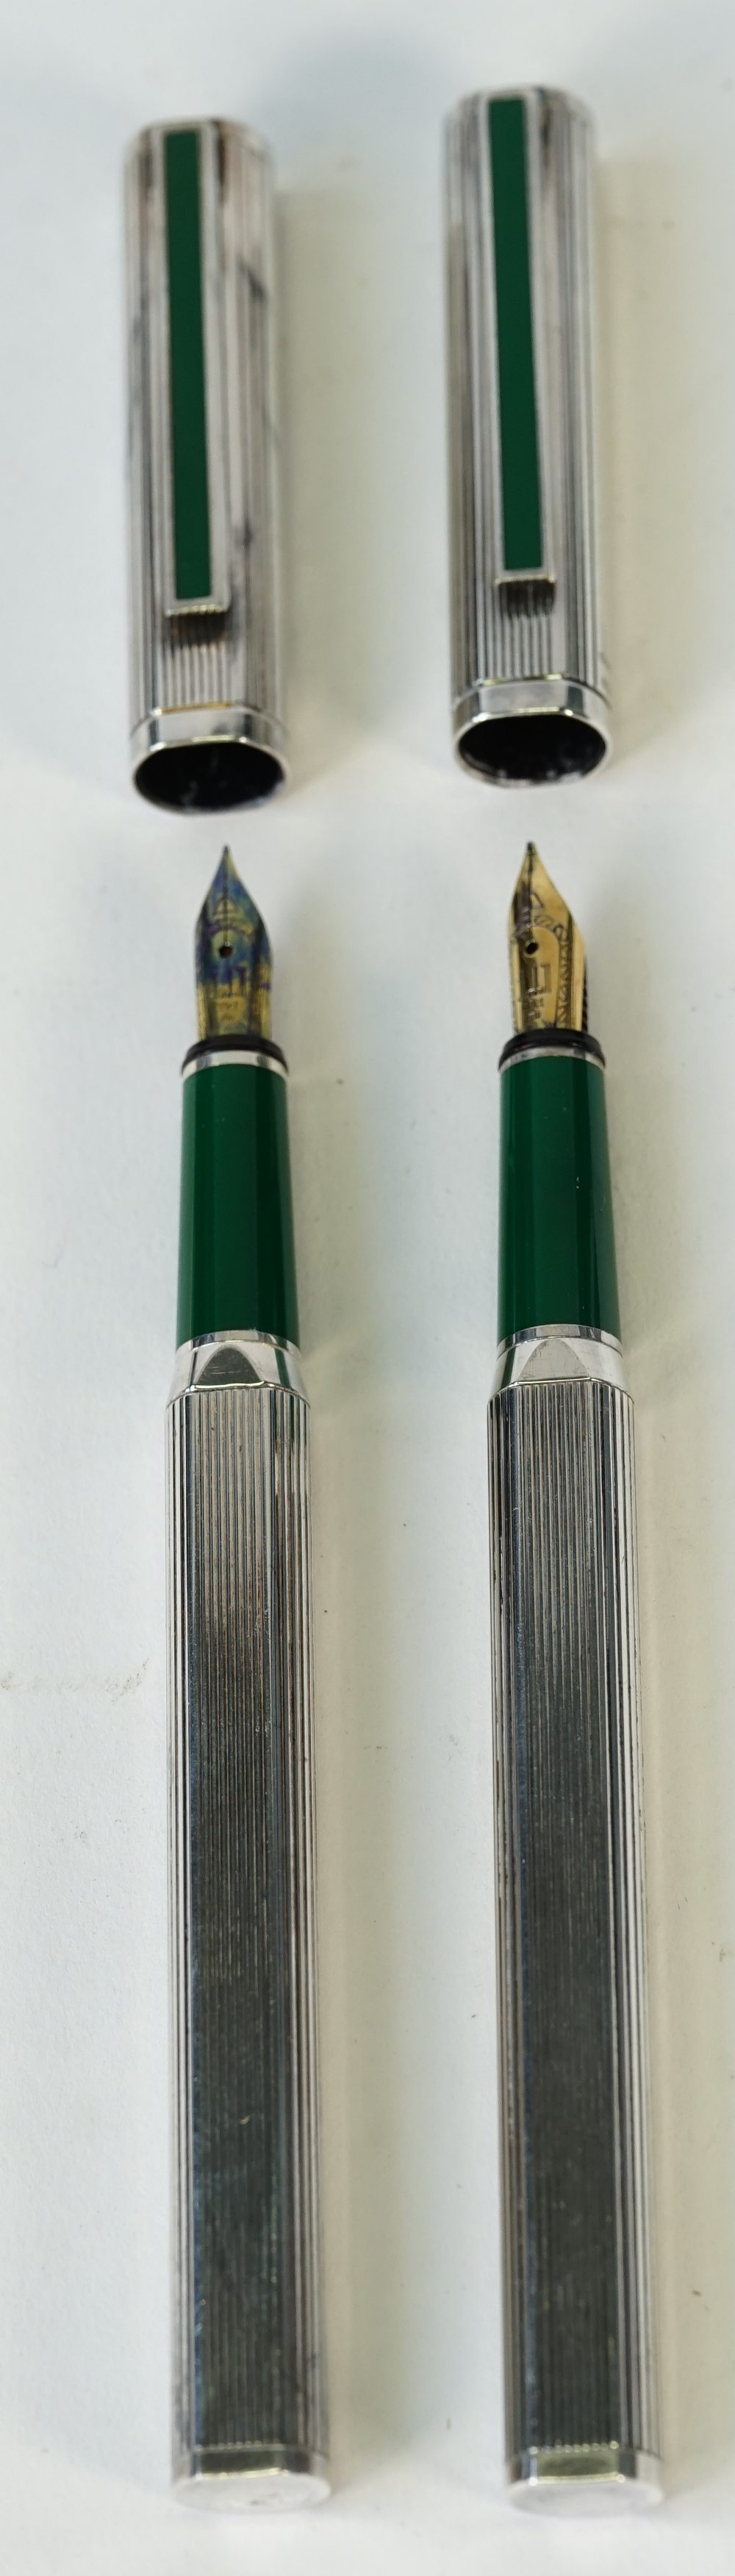 Two Dunhill silver plated fountain pens, - Image 2 of 4